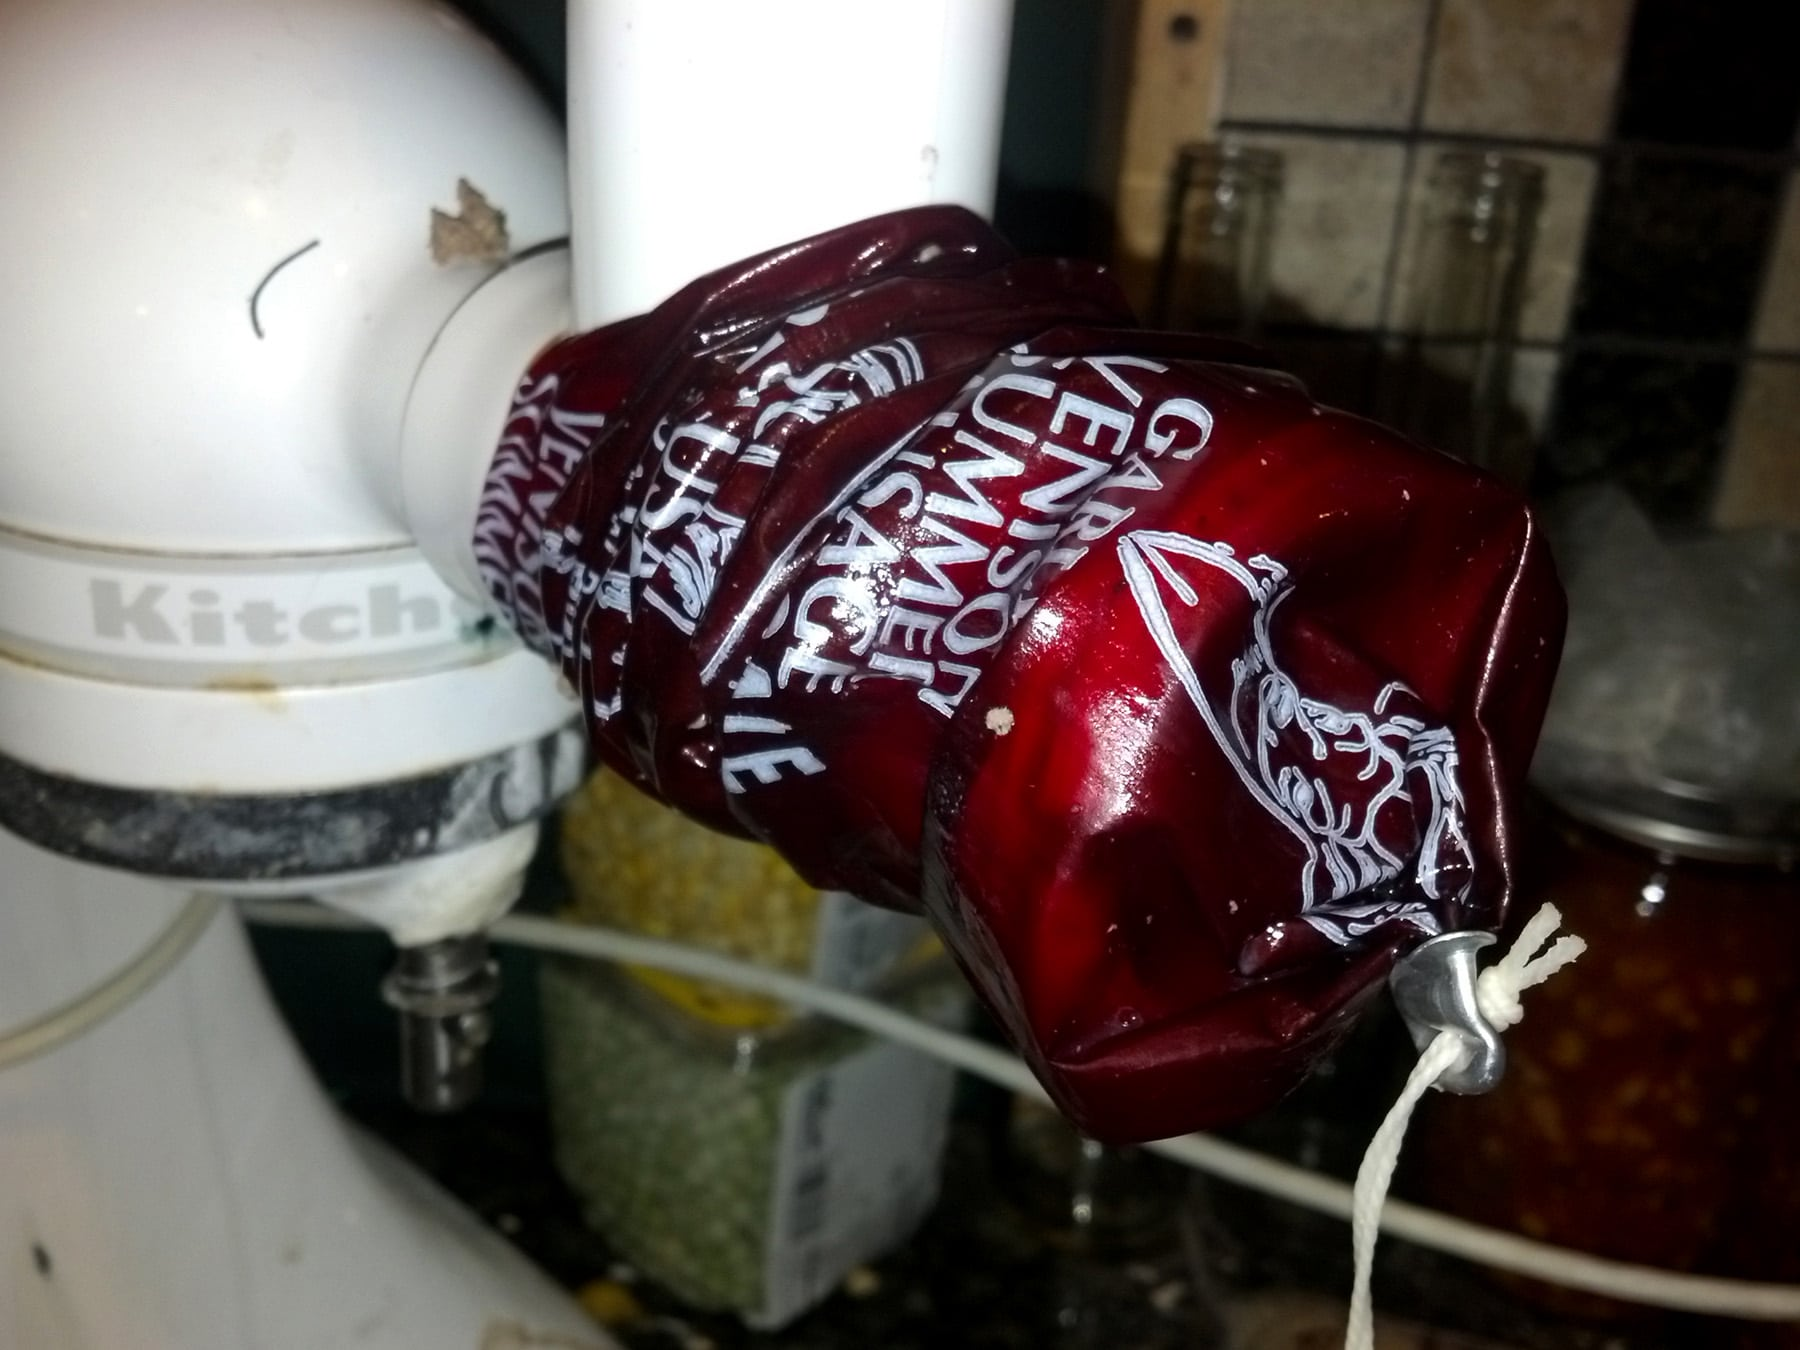 A red sausage casing being fed onto a kitchenaid stand mixer.